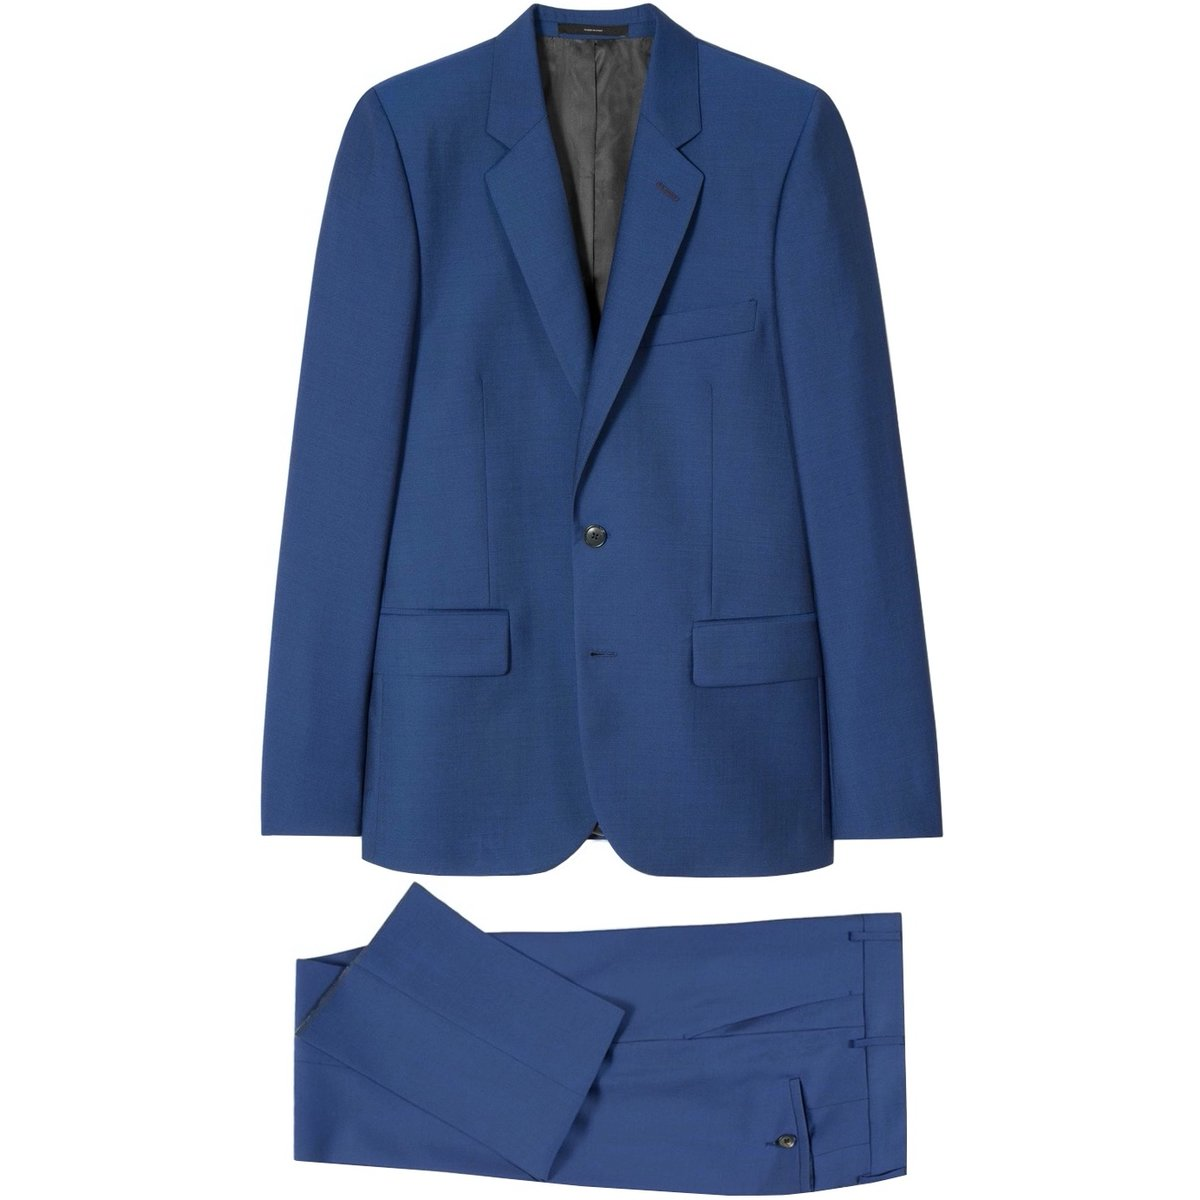 paul-smith-indigo-The-Soho-Tailored-Fit-Indigo-Wool-Mohair-Suit-A-Suit-To-Travel-In copy.jpg